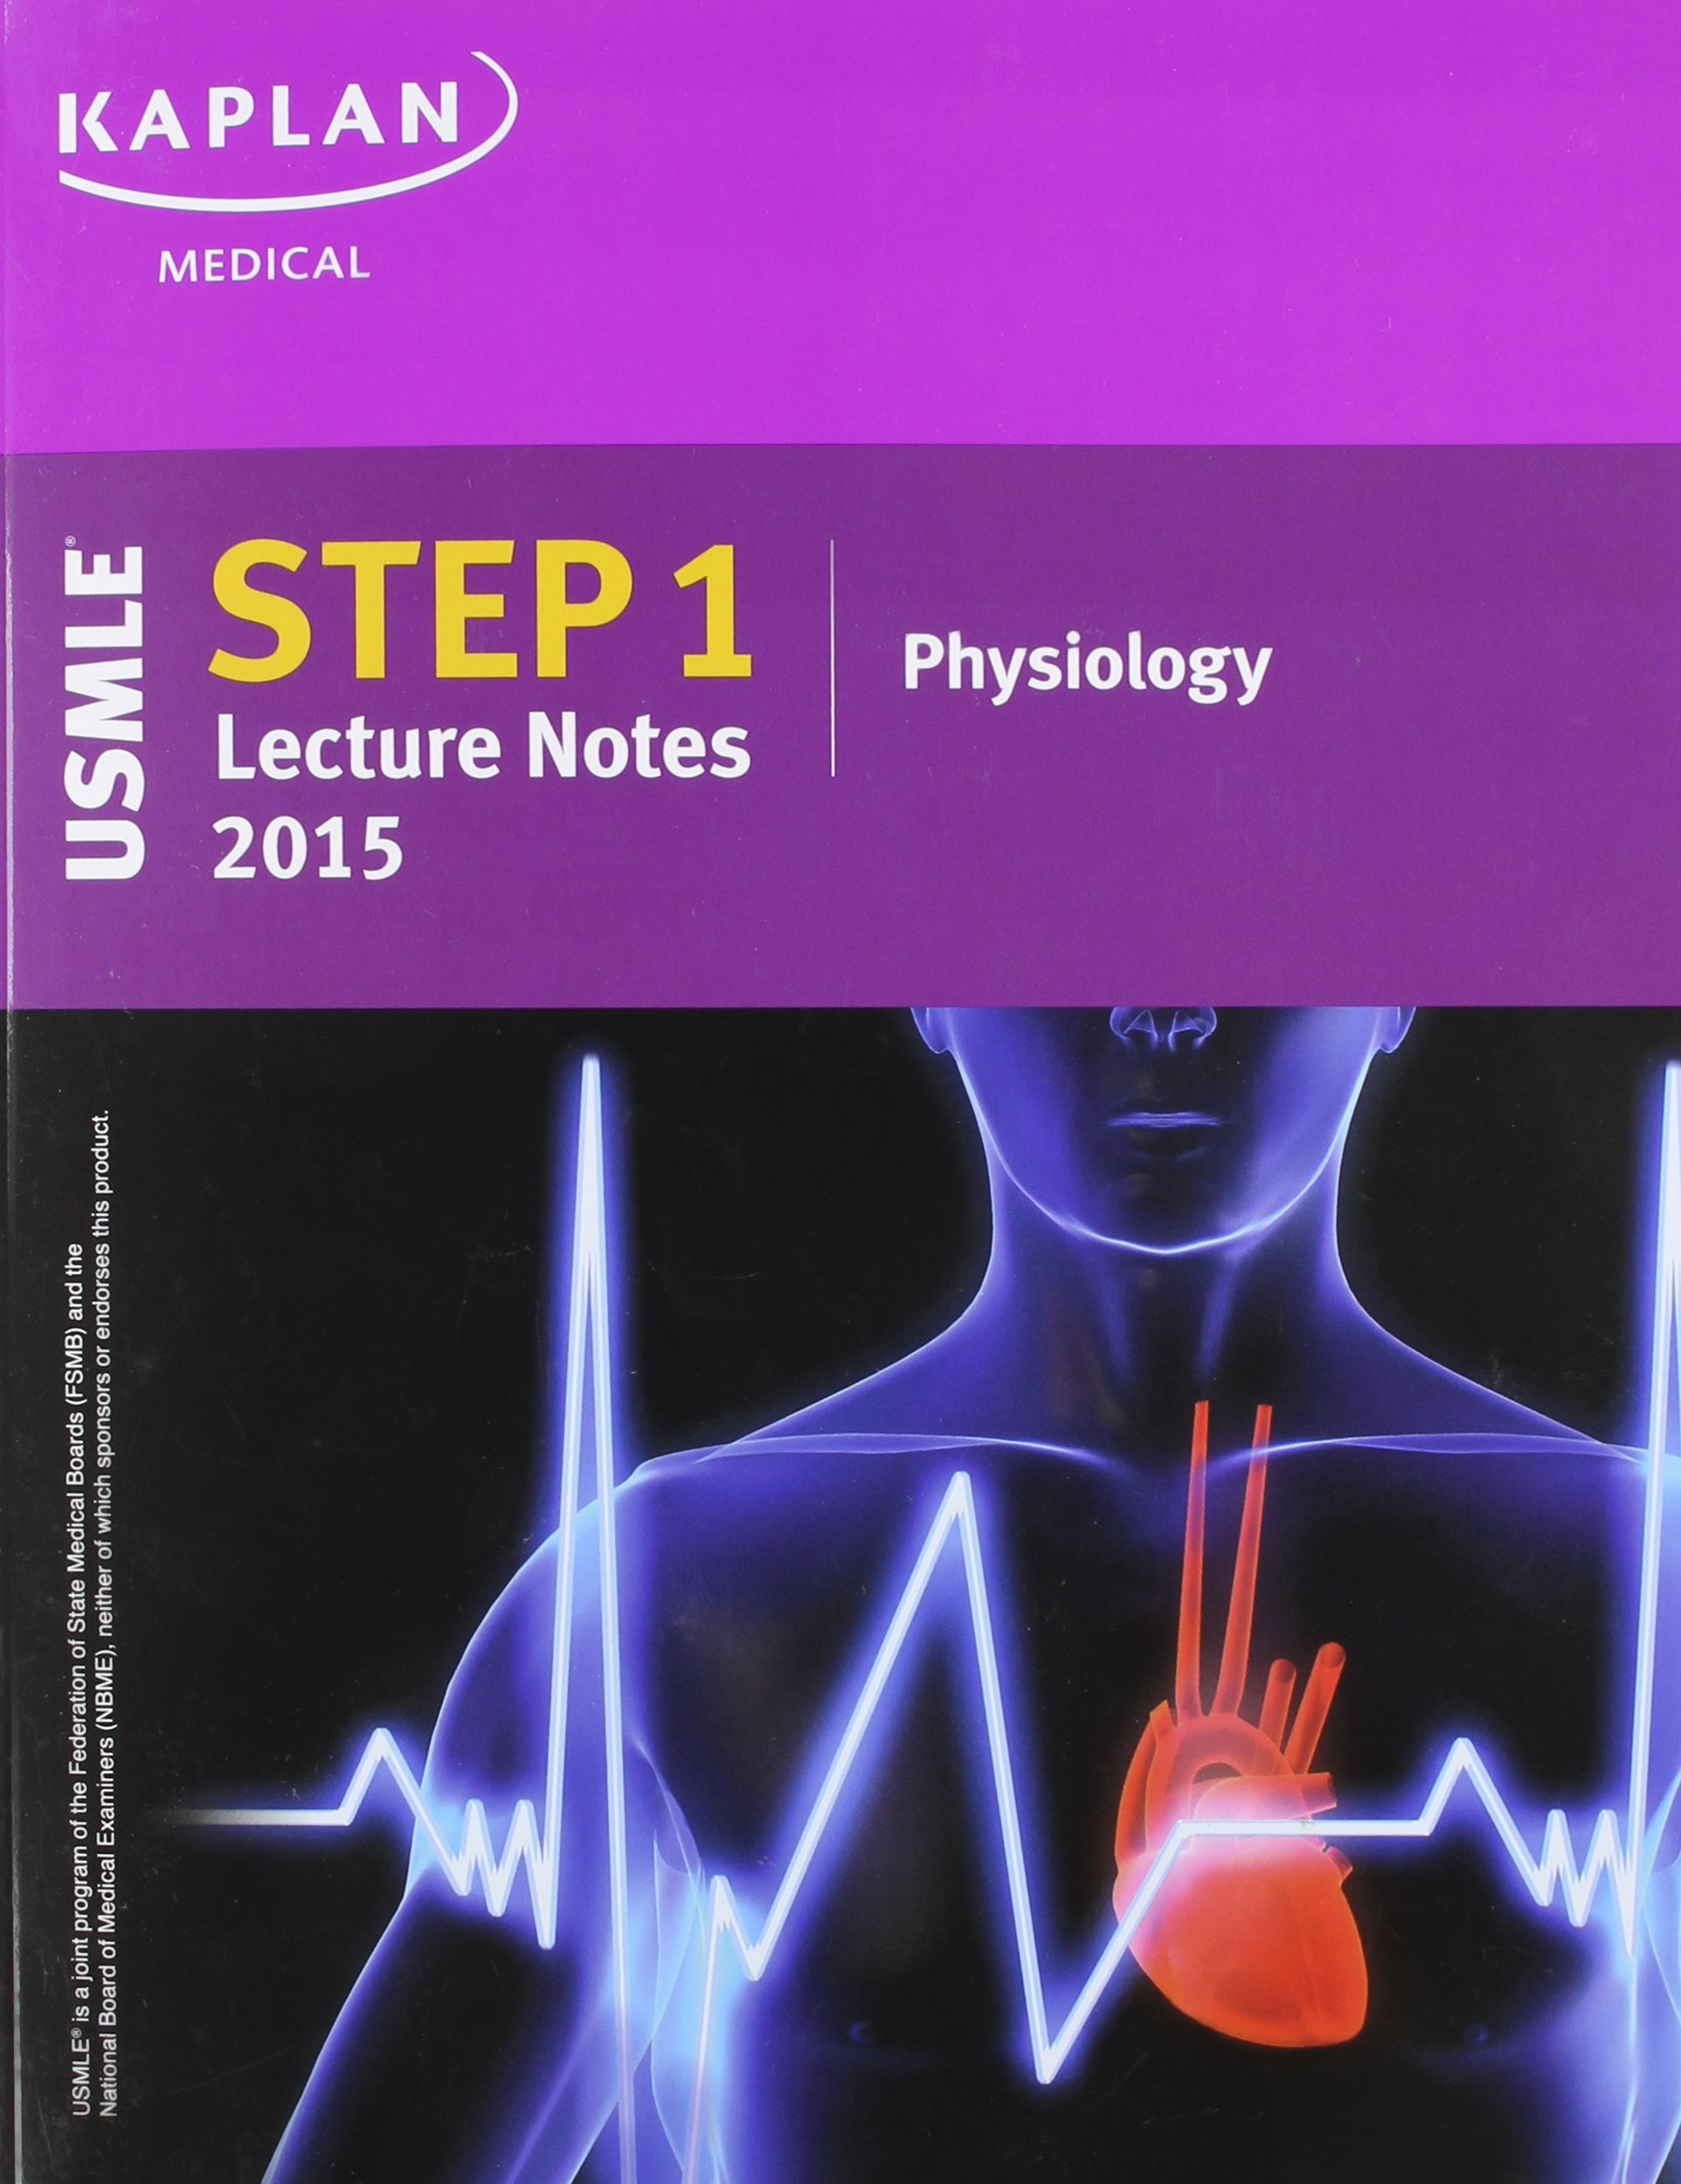 Kaplan USMLE Step 1 Lecture Notes 2015 Physiology: 9781625230201 ...